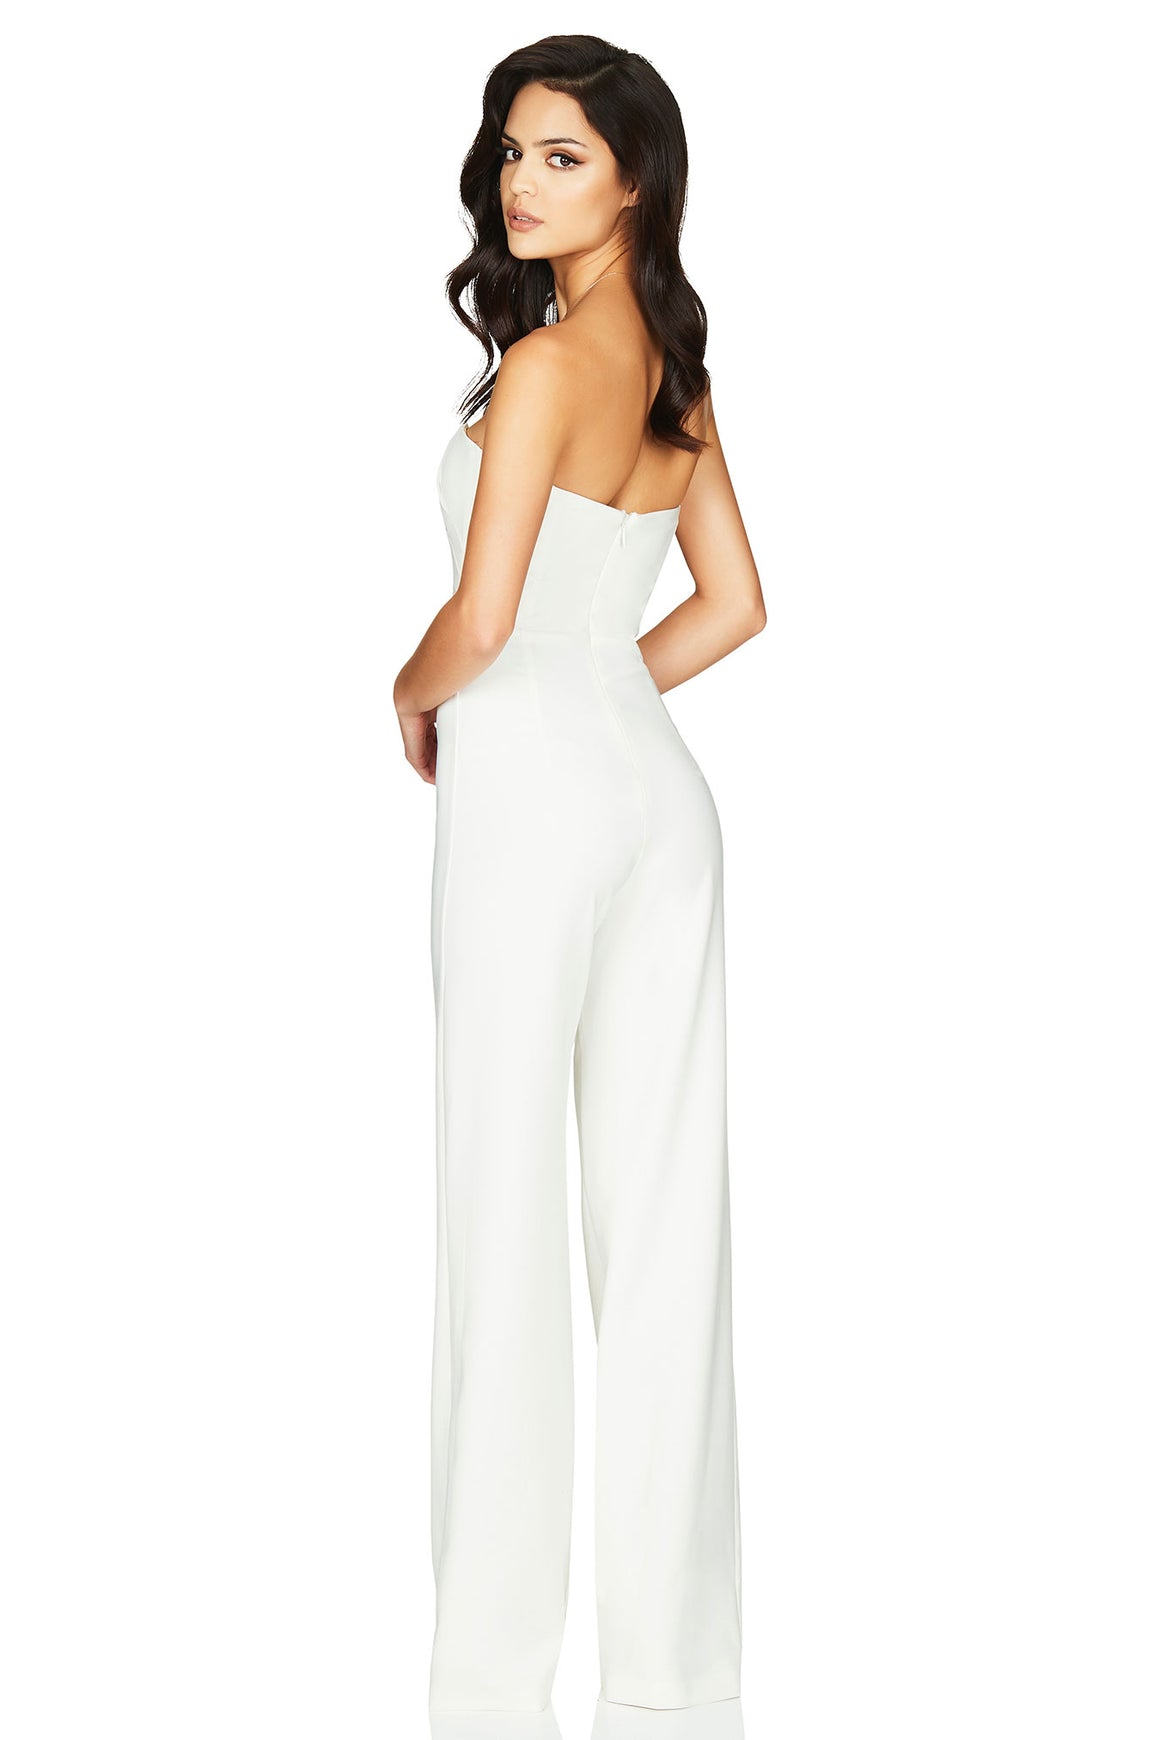 Bisous Jumpsuit - White - Miss Runway Boutique